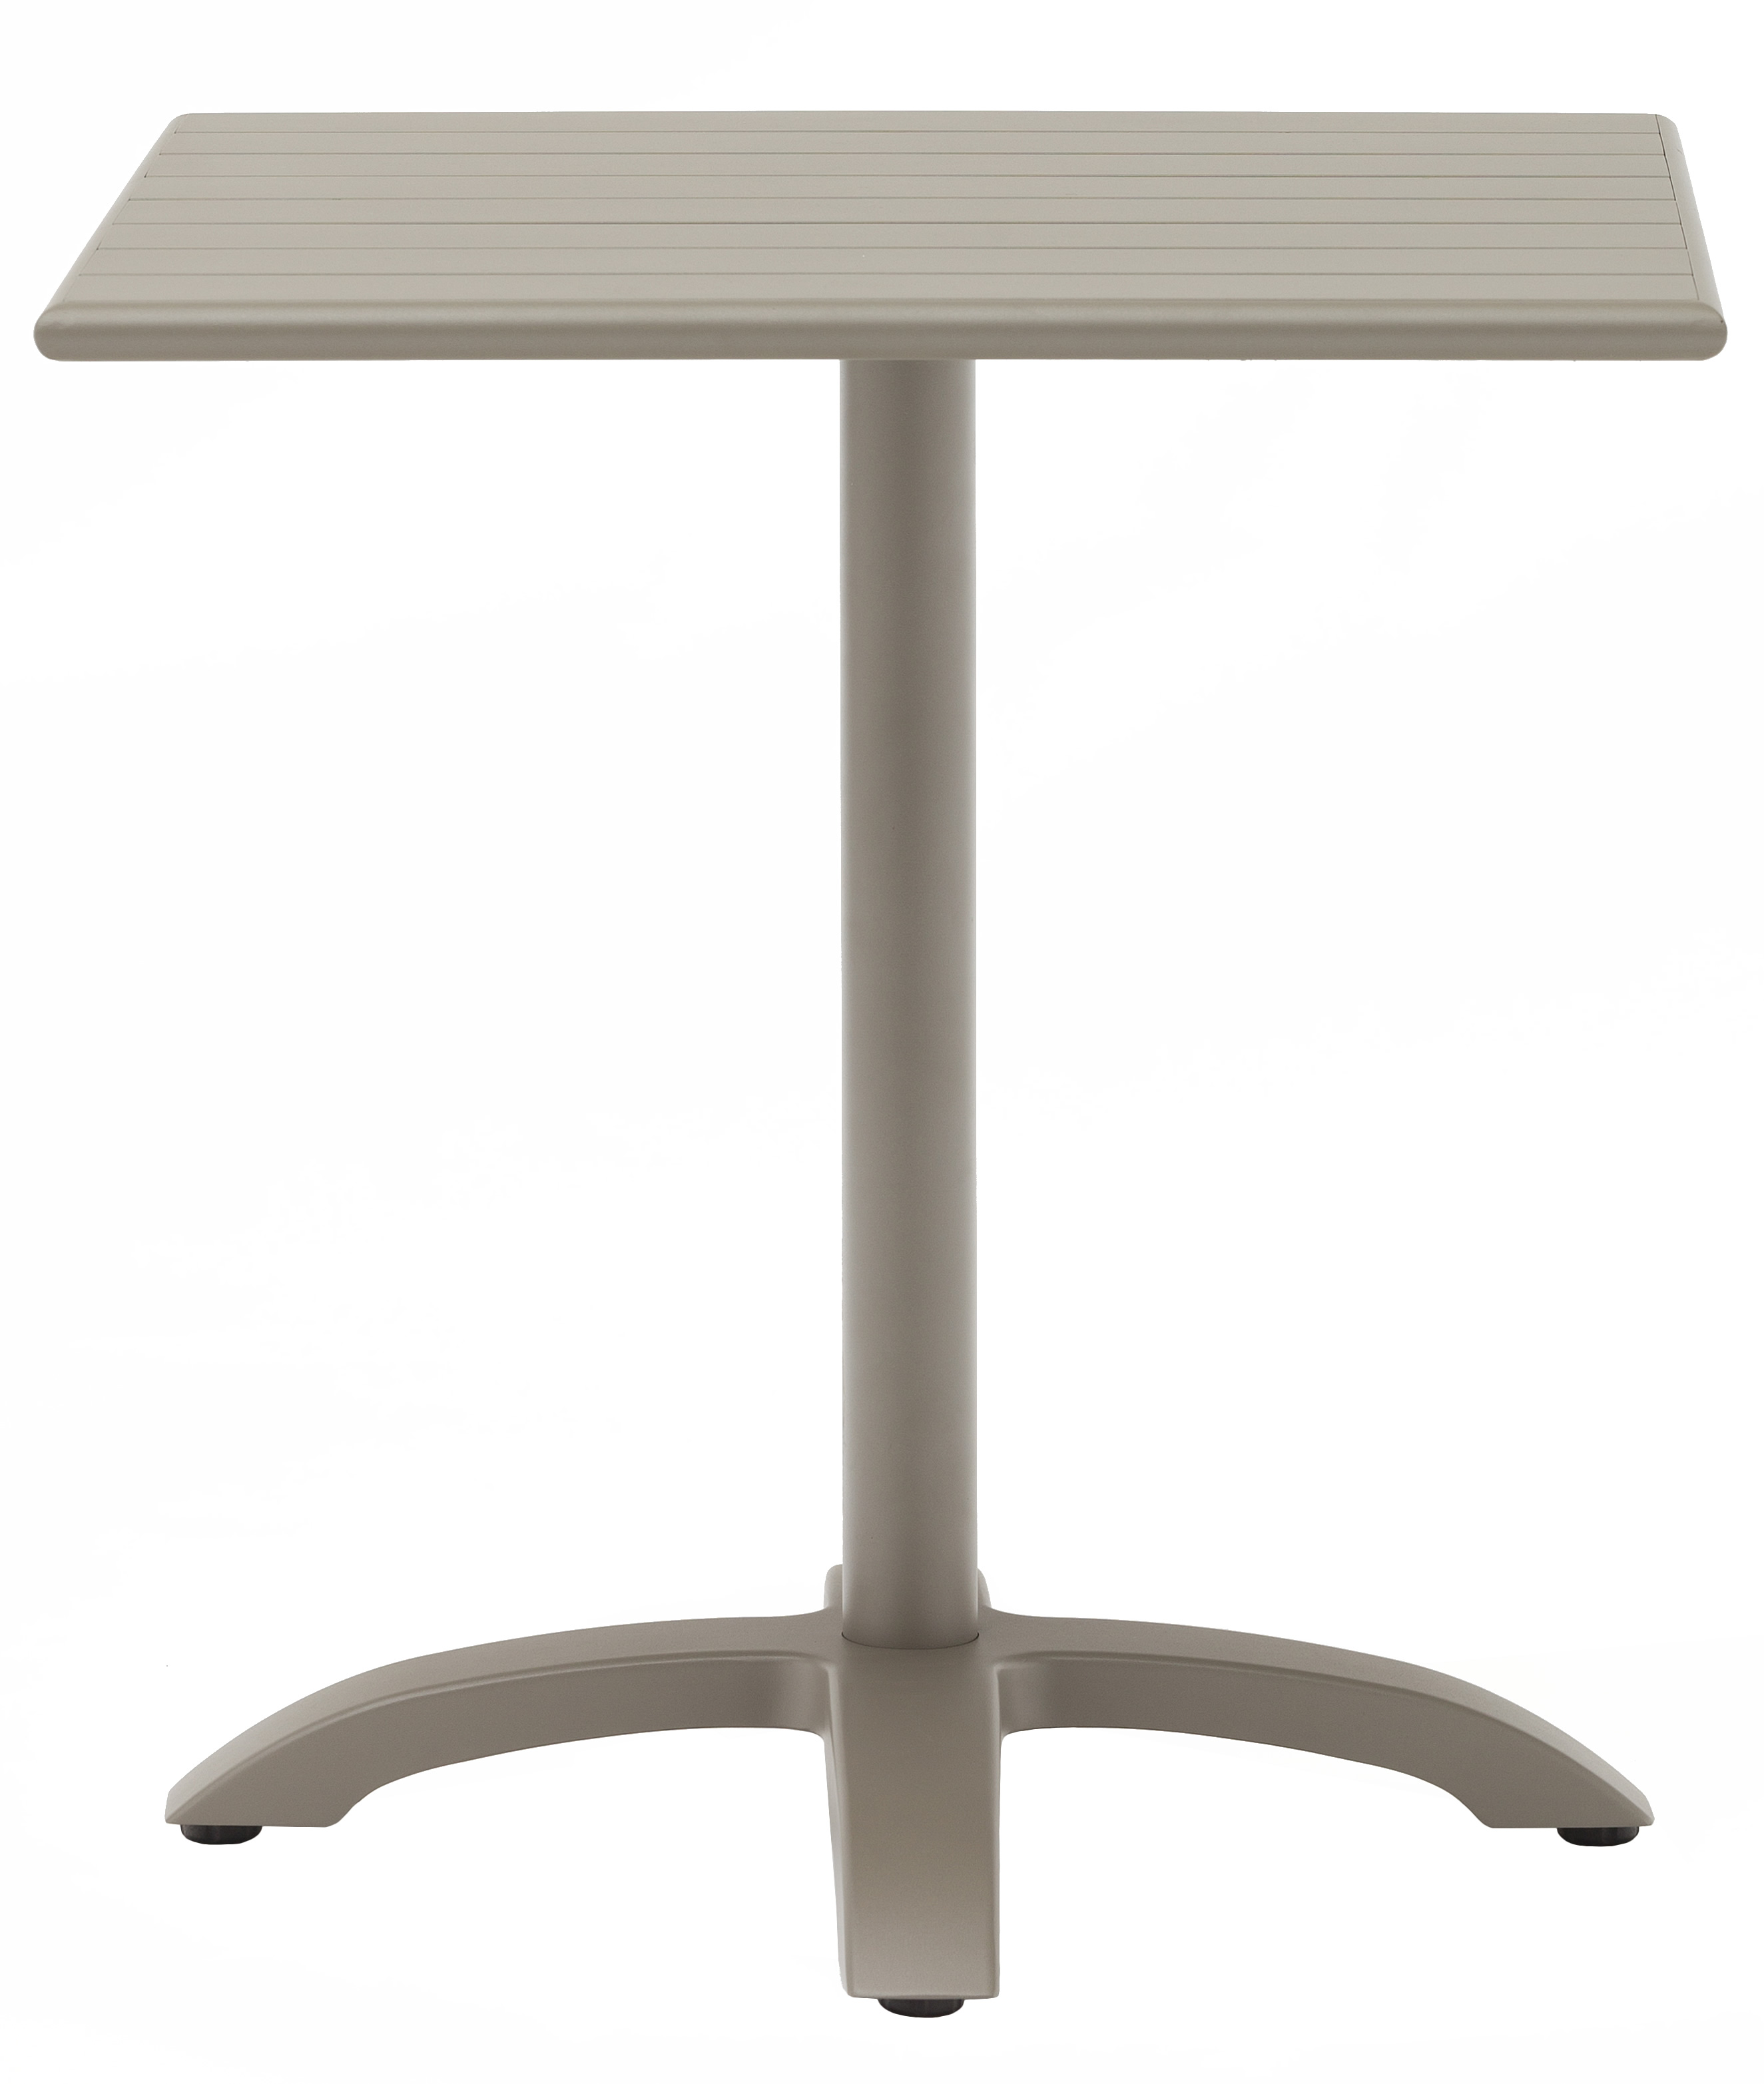 Champagne Finish Square Aluminum Table Picture 1